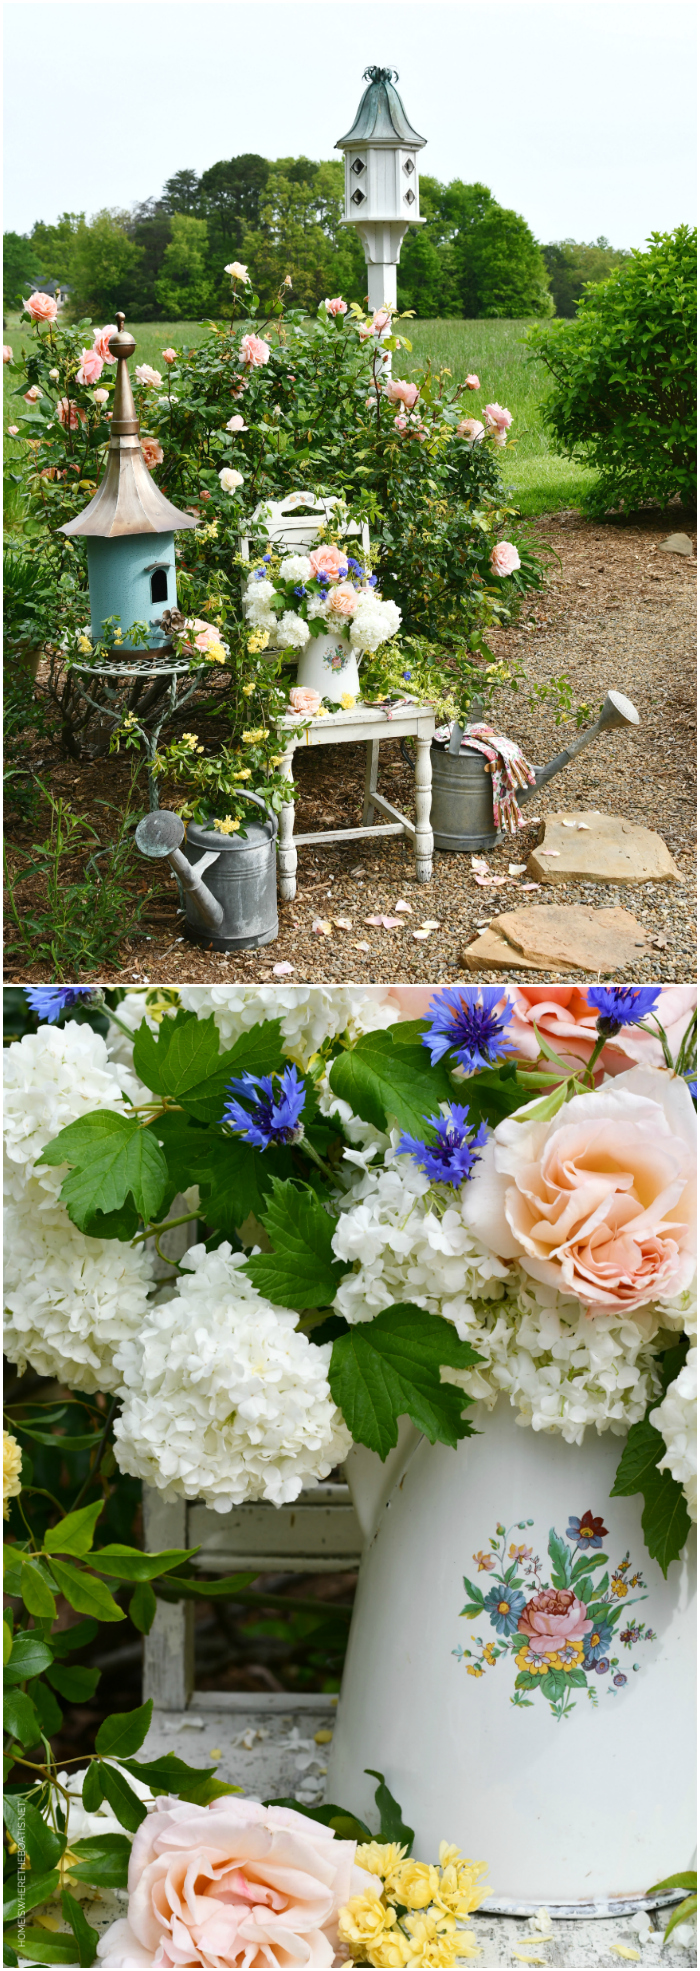 Birdhouse, watering cans and pitcher with garden flowers | ©homeiswheretheboatis.net #garden #flowers #spring #arrangement #roses